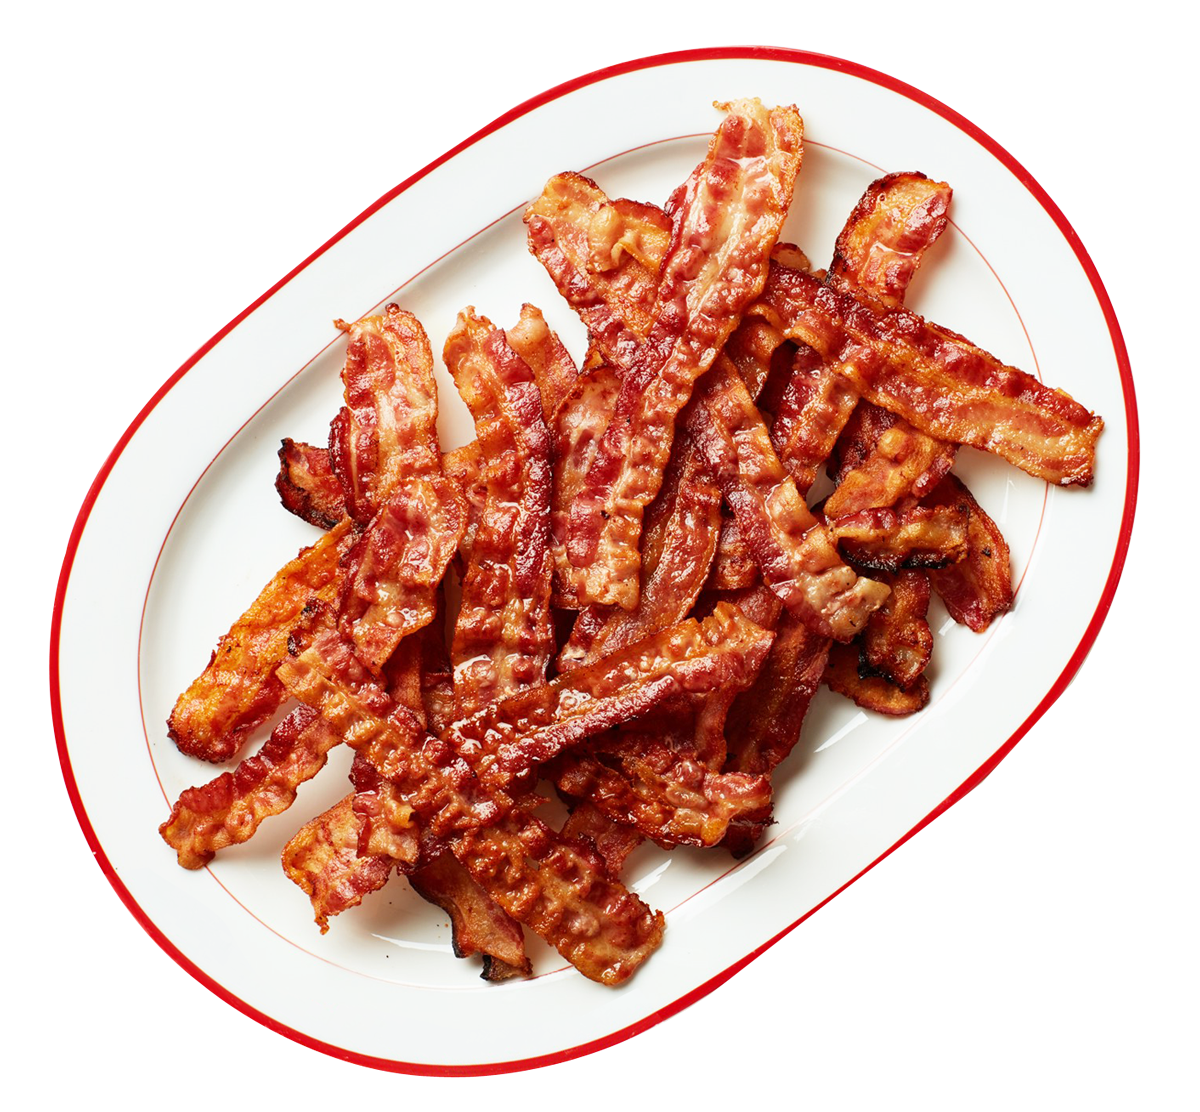 Bacon PNG-PlusPNG.com-1200 - Bacon PNG